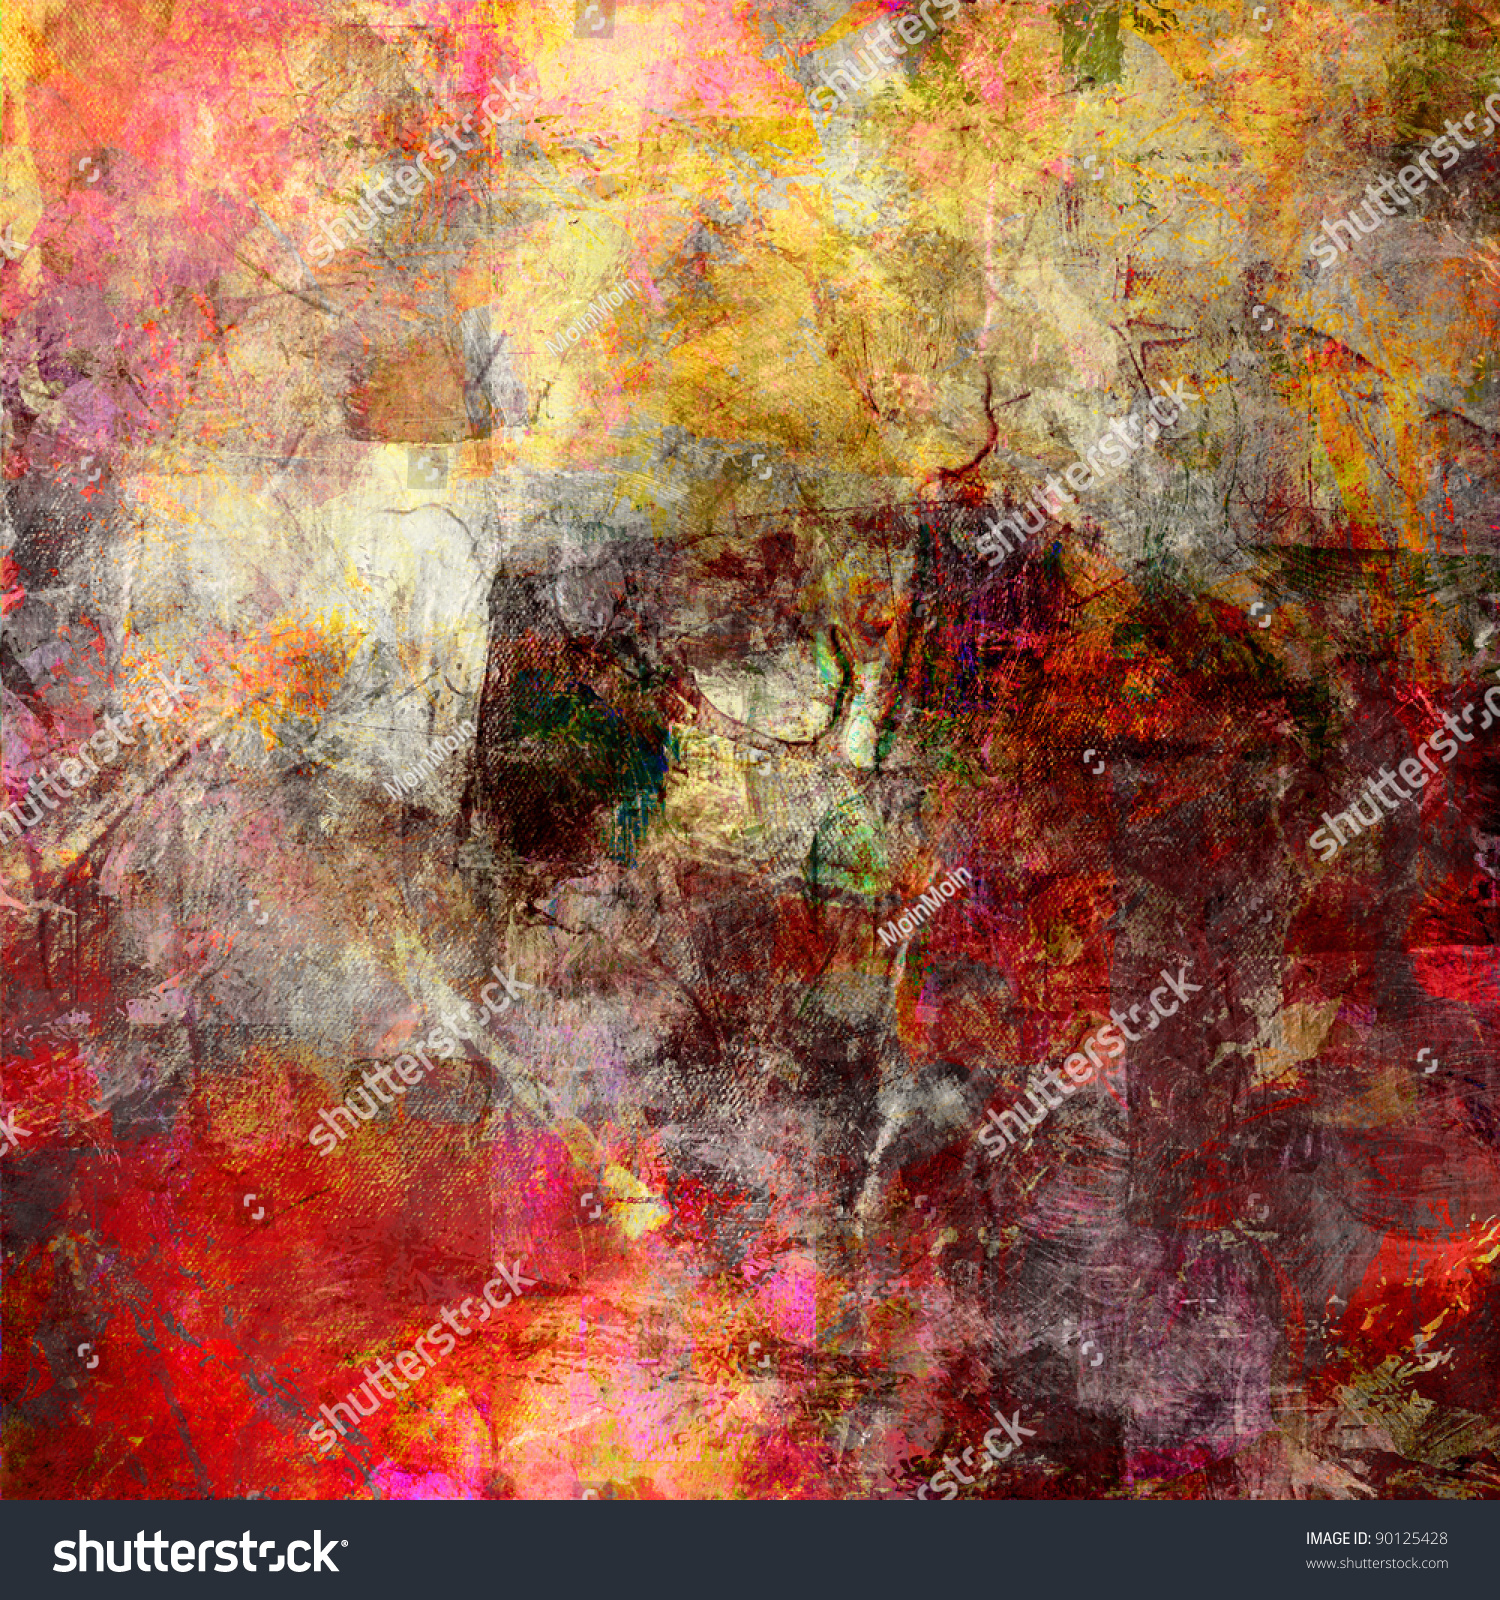 layered abstract painting emoticon symbols gallery